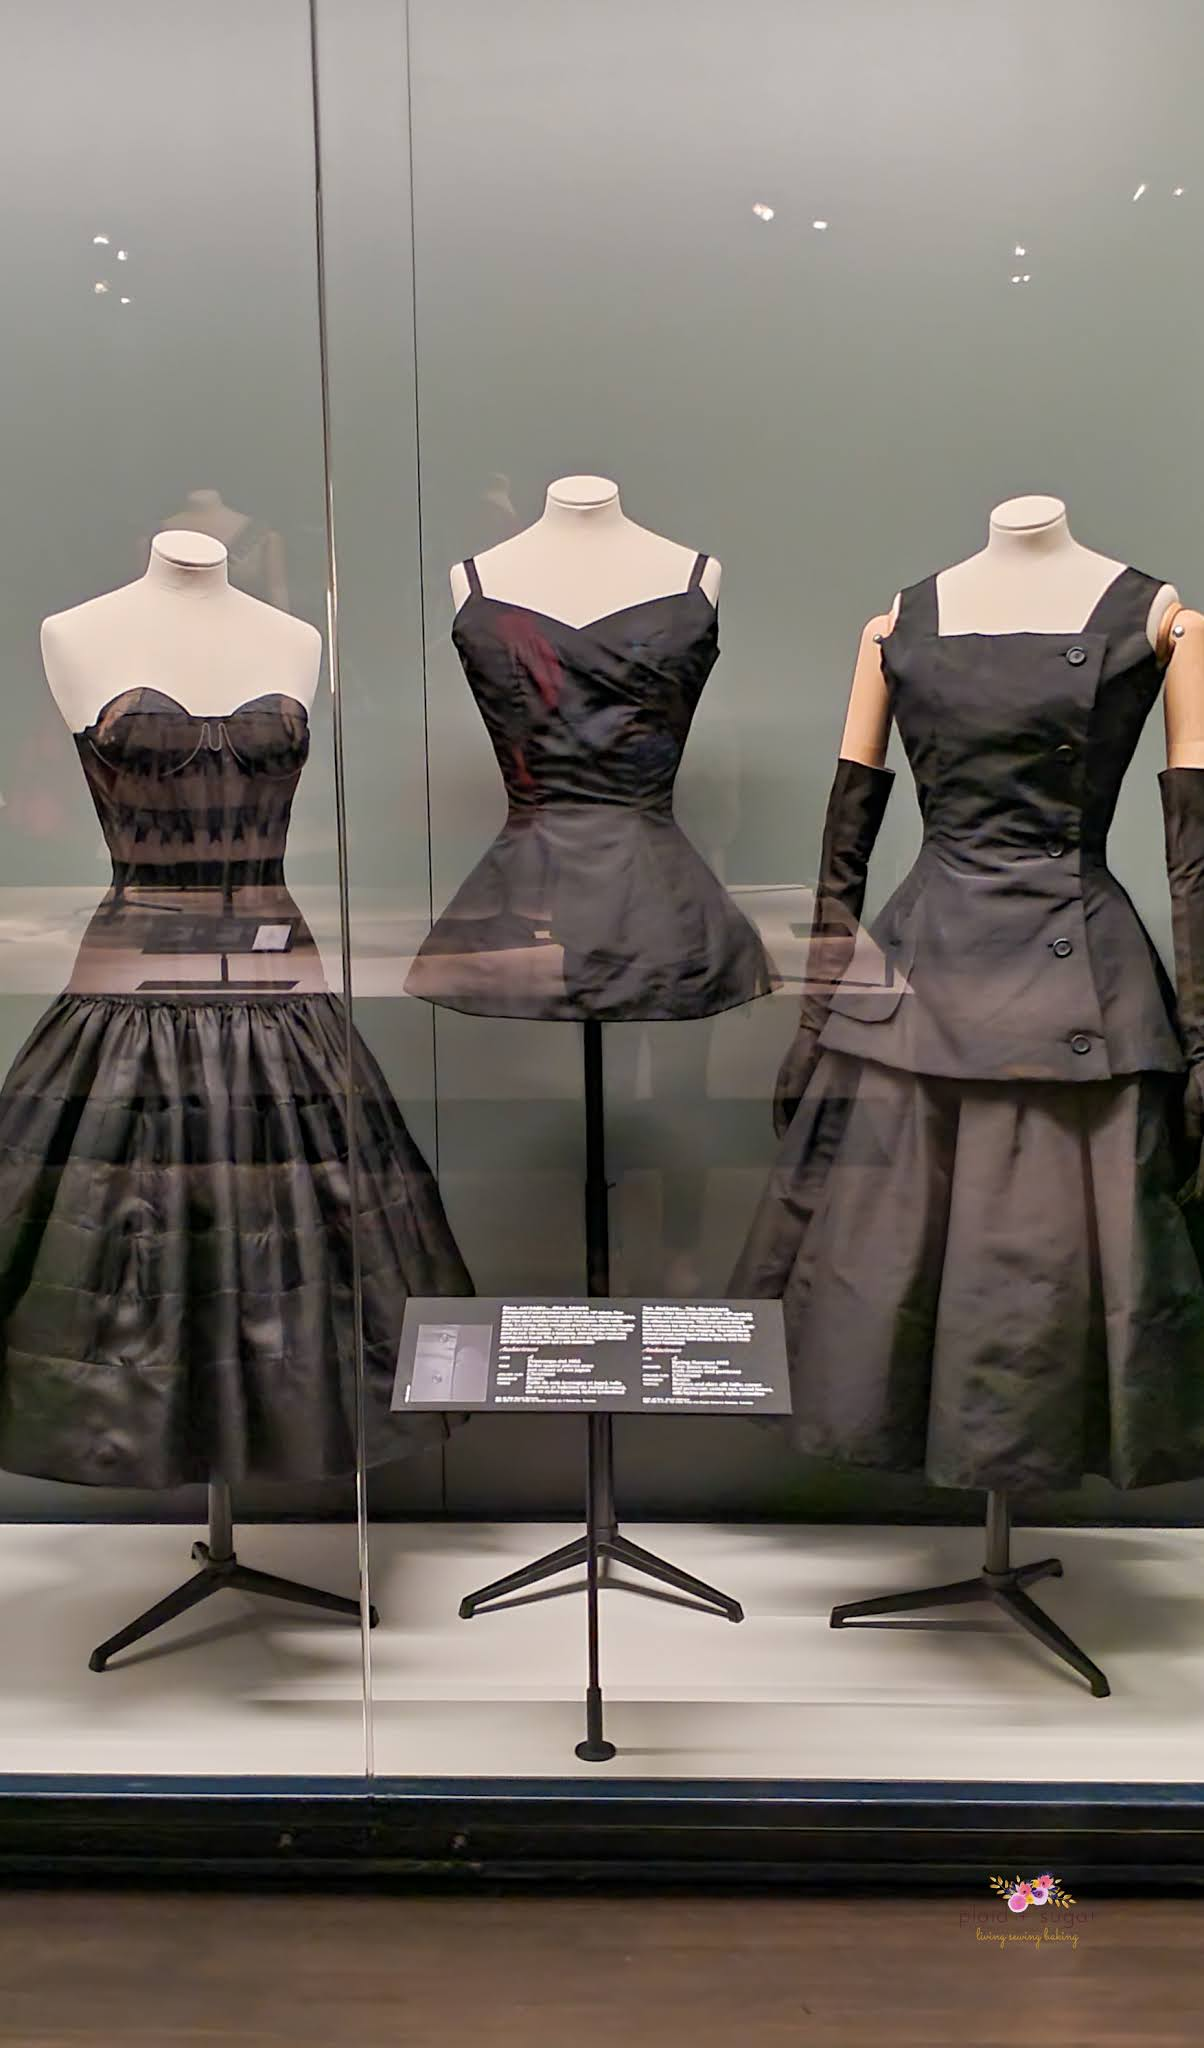 Undergarments revolutionized by Christian Dior for the New Look,  Dior Exhibit by Plaid and Sugar